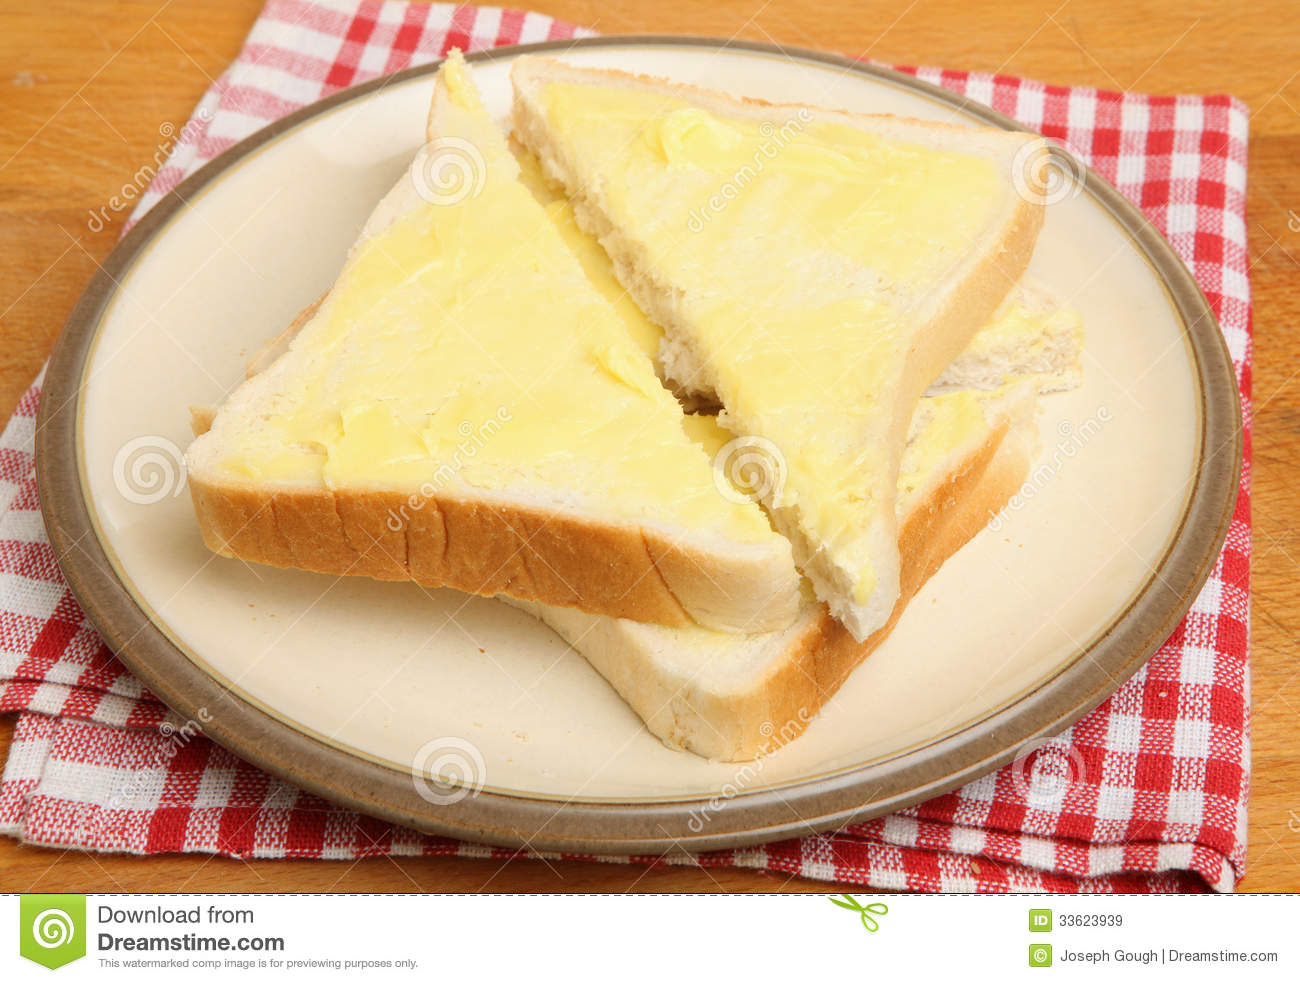 Bread And Butter Royalty Free Stock Images - Image: 33623939